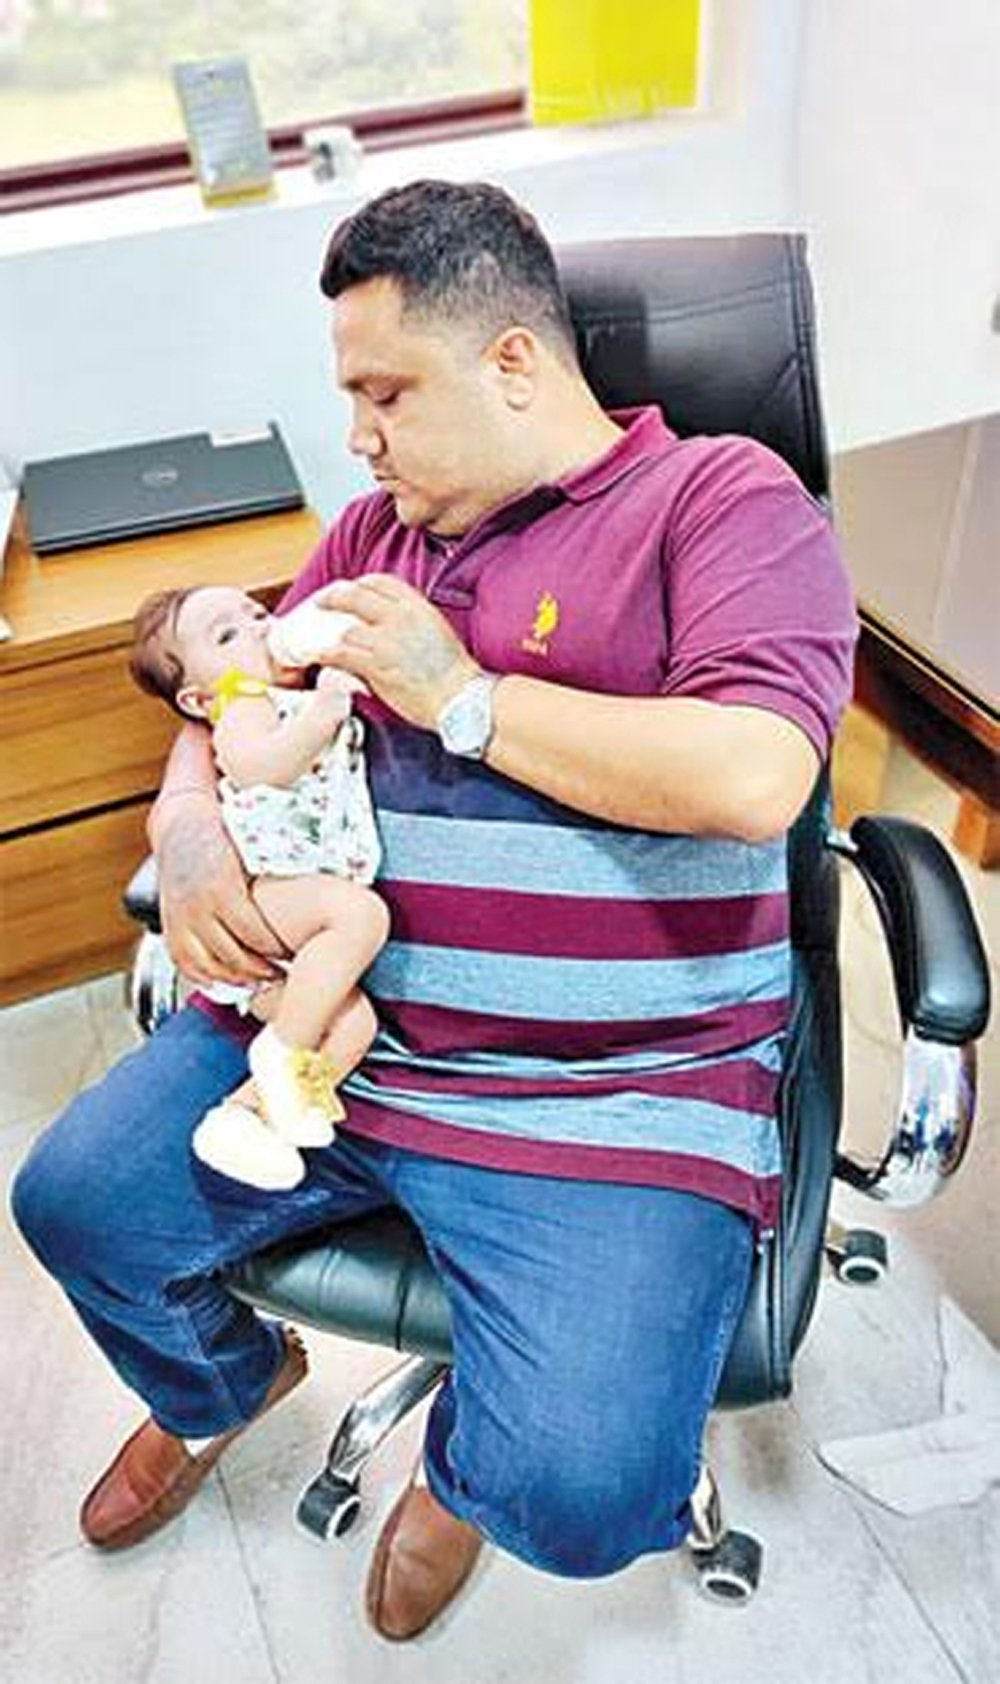 Heartwarming Photo Of A Father Feeding His Baby Daughter Goes Viral - Telugu Viral News Heartwarming Photo Of A Father Feeding His Baby Daughter Goes Viral -